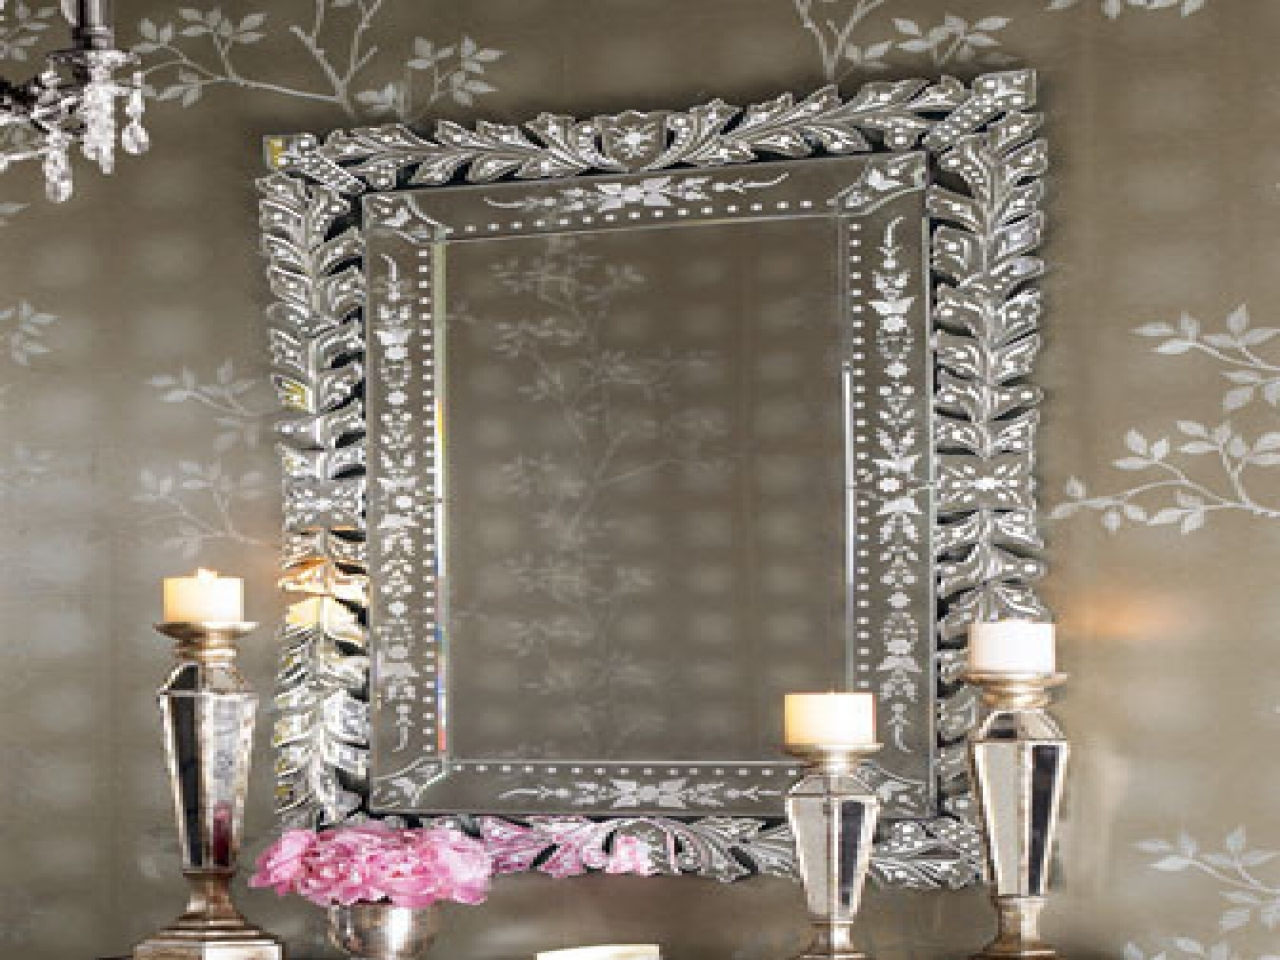 Framed Oval Mirrors For Bathrooms Beach Themed Wall Mirrors Intended For Venetian Mirror Large (Image 5 of 15)